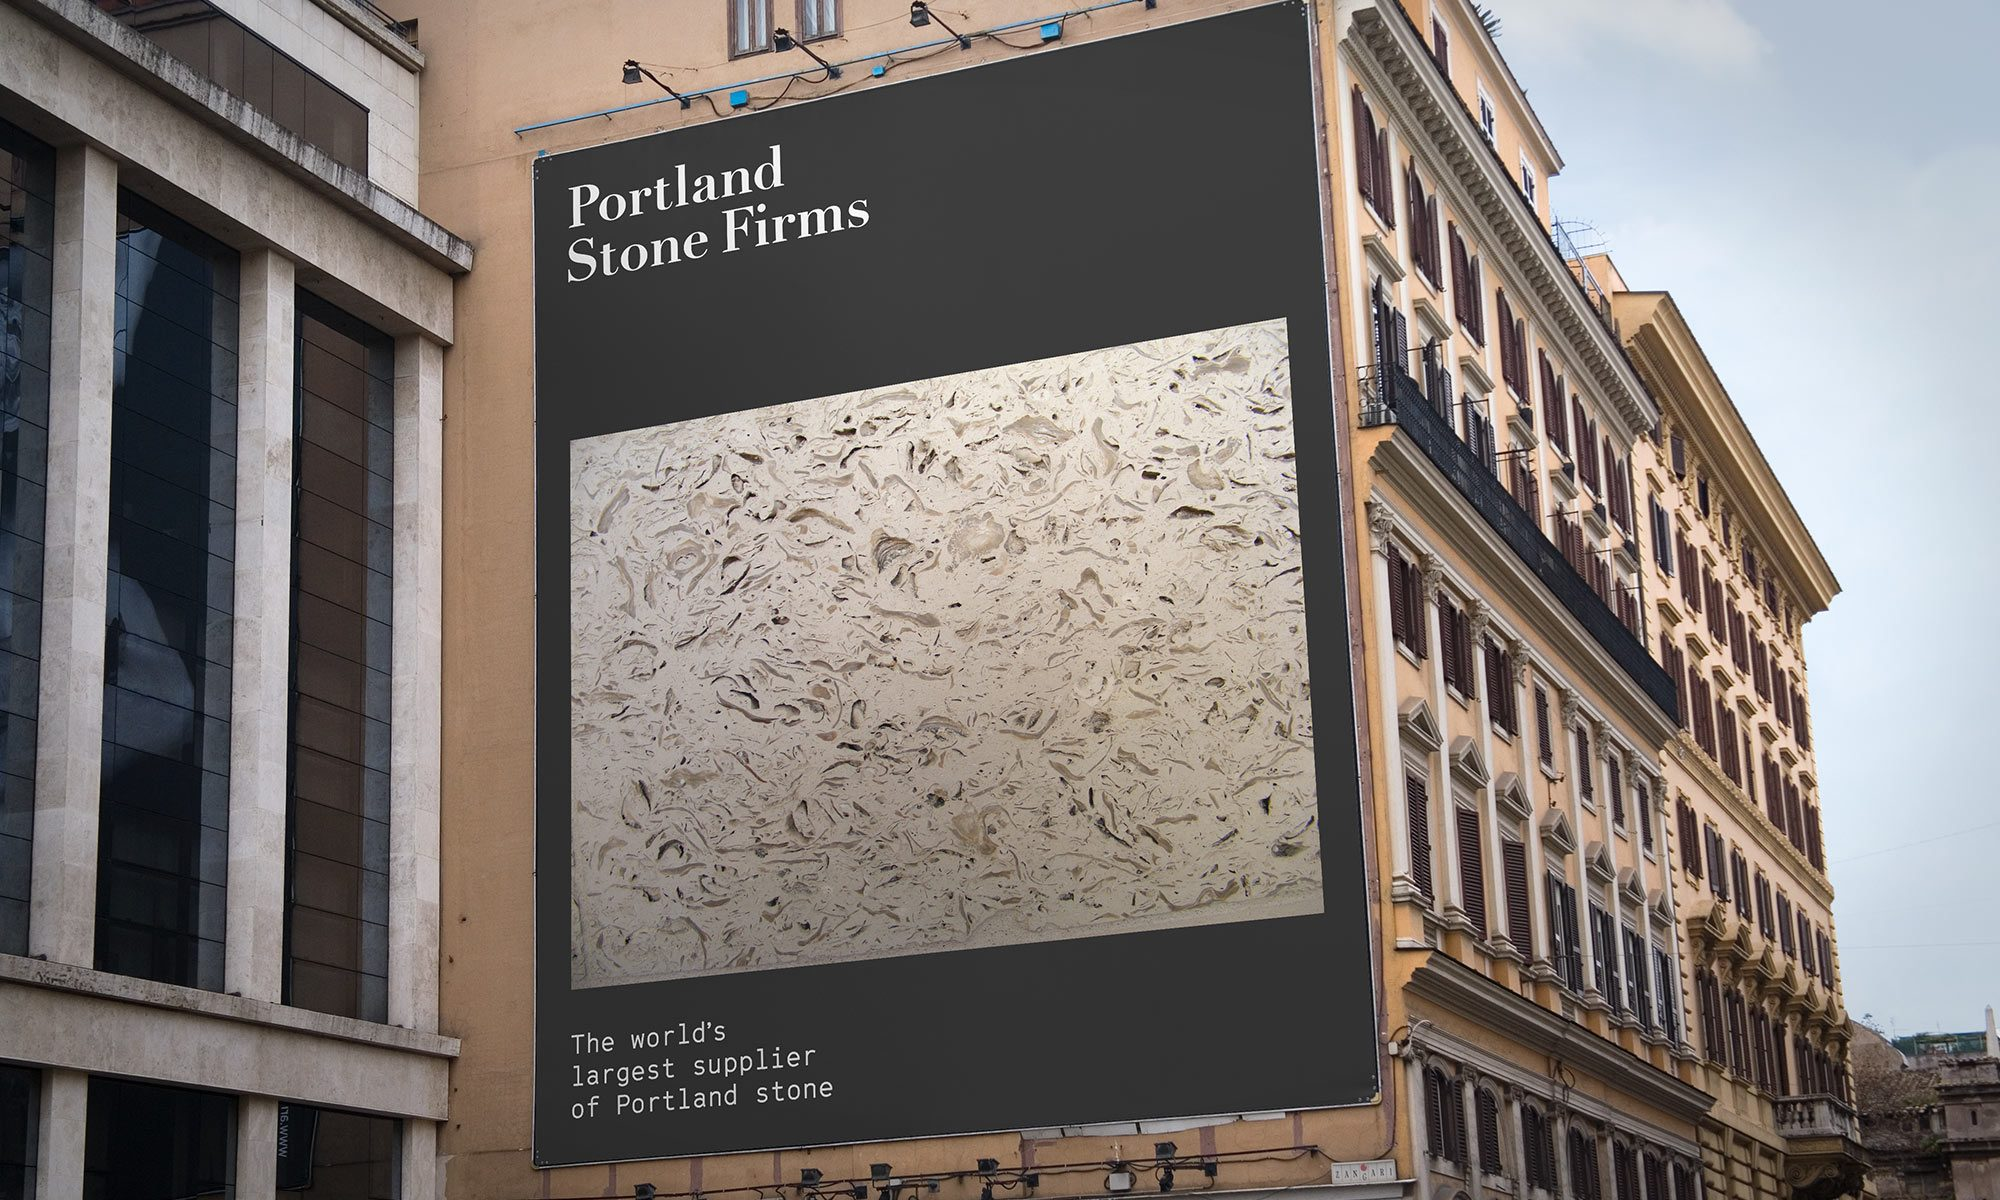 Portland Stone Firms billboard